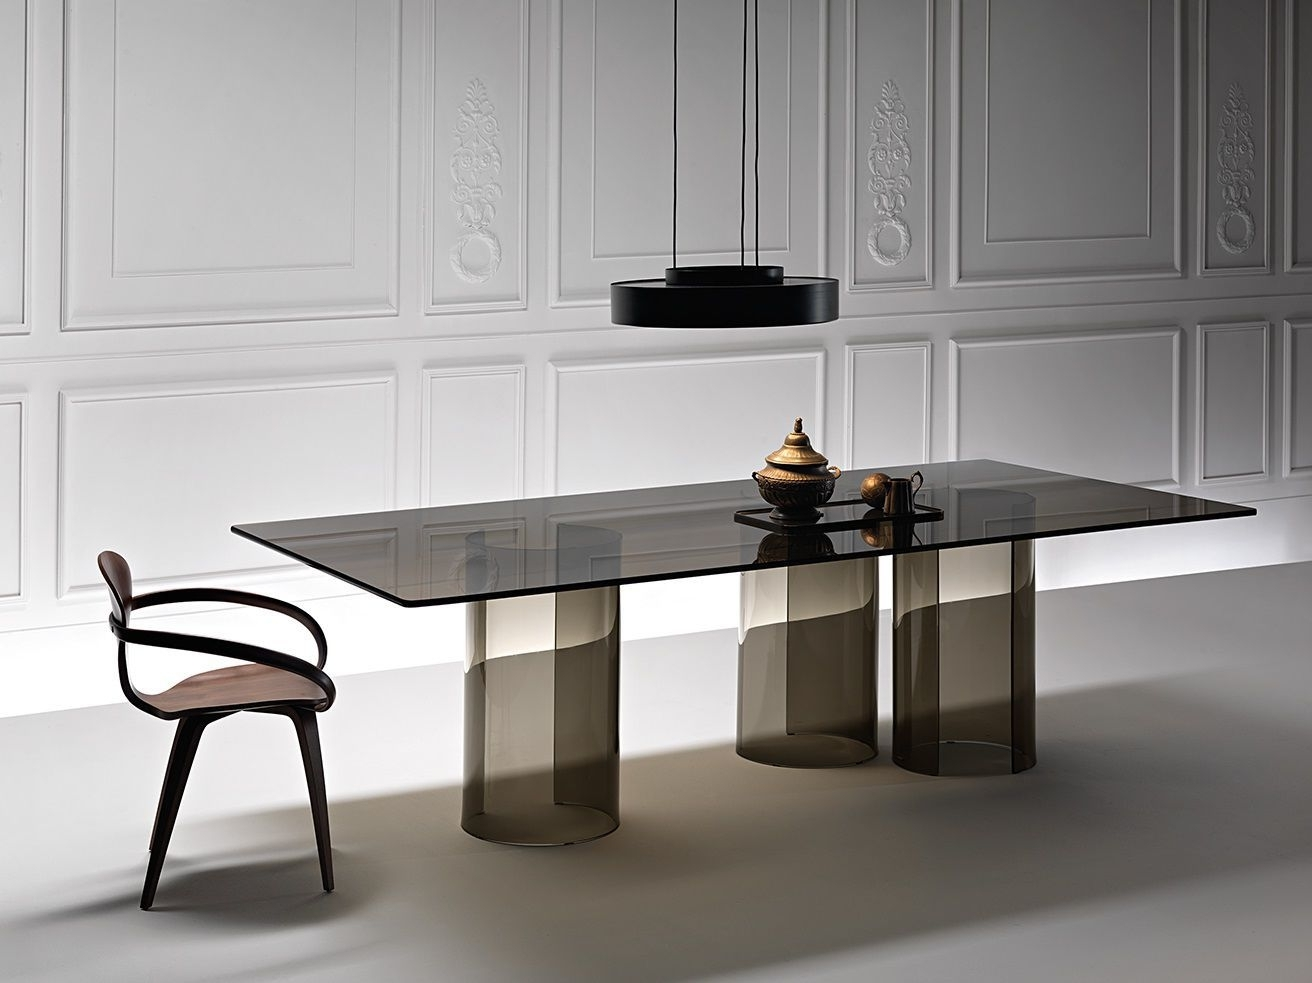 Well Known Contemporary Dining Table / Smoked Glass / Curved Glass For Curved Glass Dining Tables (View 21 of 25)